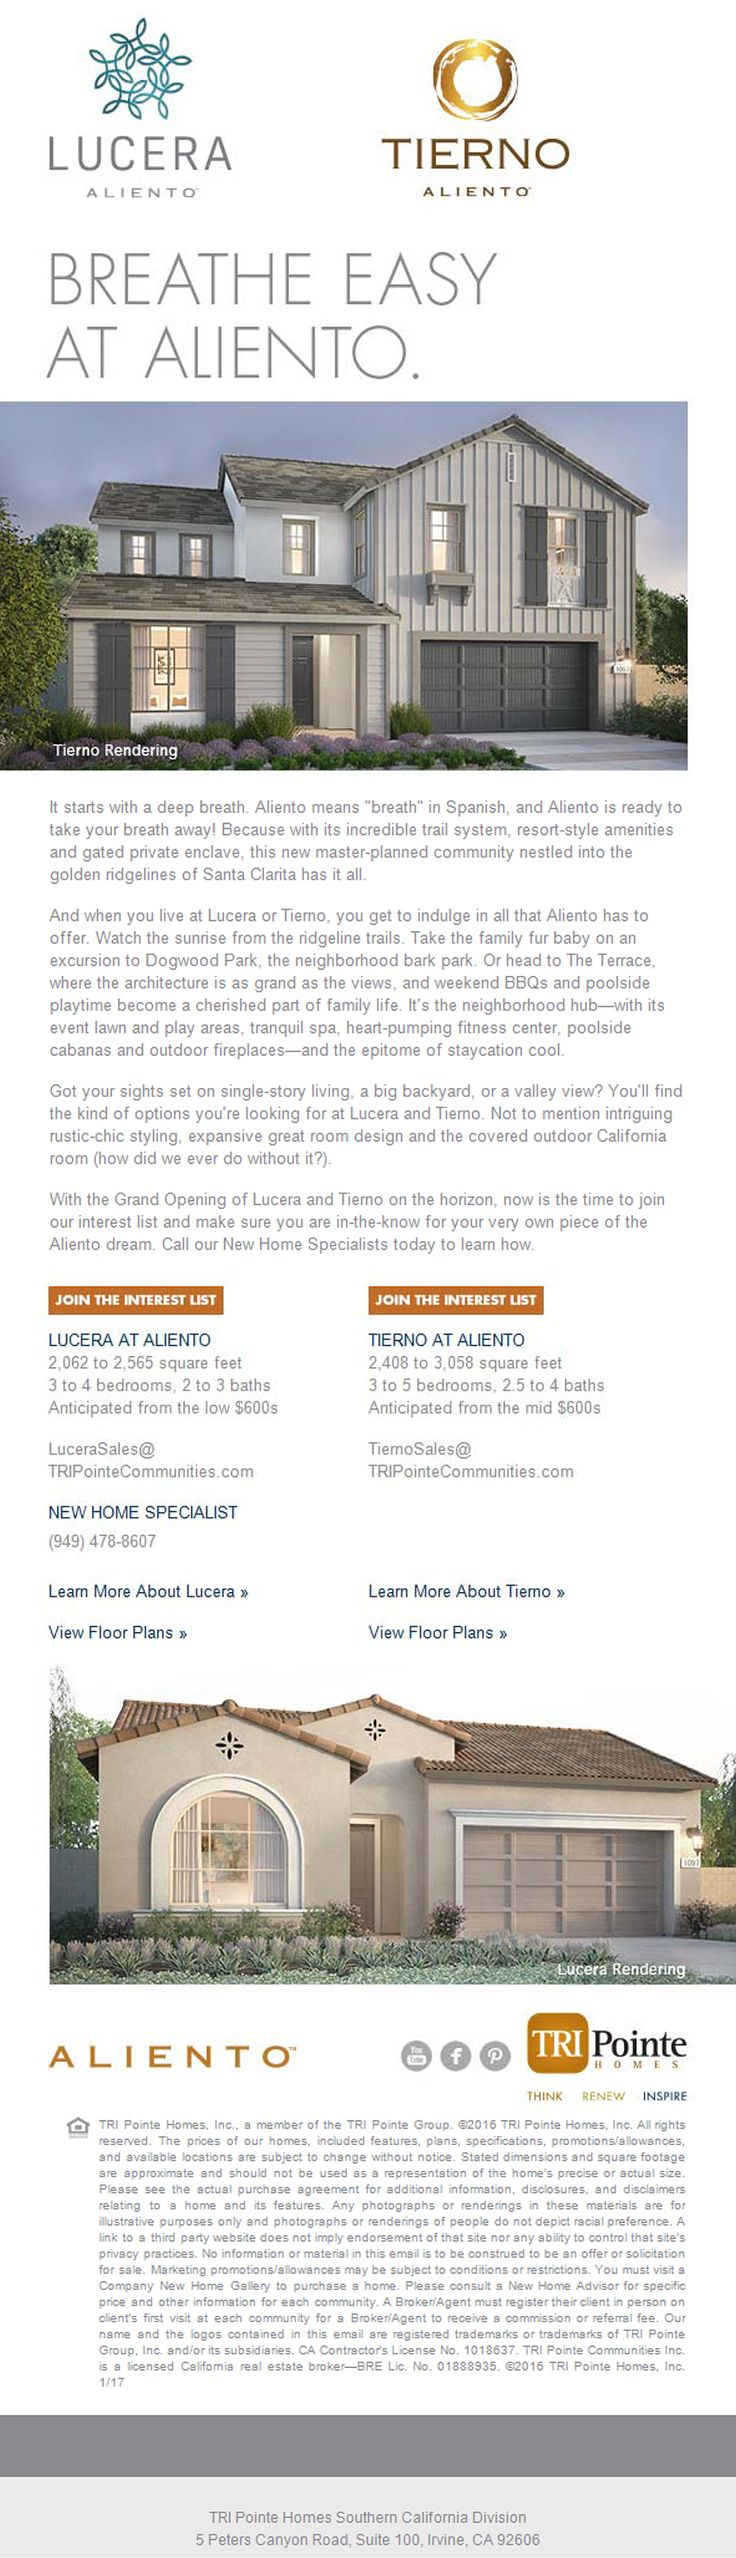 New Homes for Sale in Santa Clarita, California  Grand Opening Around the Corner: New Homes in Santa Clarita  Resort-Style Amenities |  Gates Private Enclave  |  Beautiful Ridgeline Trails  |  Opening Early 2017 - Join the Interest List Today  Tierno:  https://www.tripointehomes.com/southern-california/tierno-at-aliento/  Lucera:  https://www.tripointehomes.com/southern-california/lucera-at-aliento/